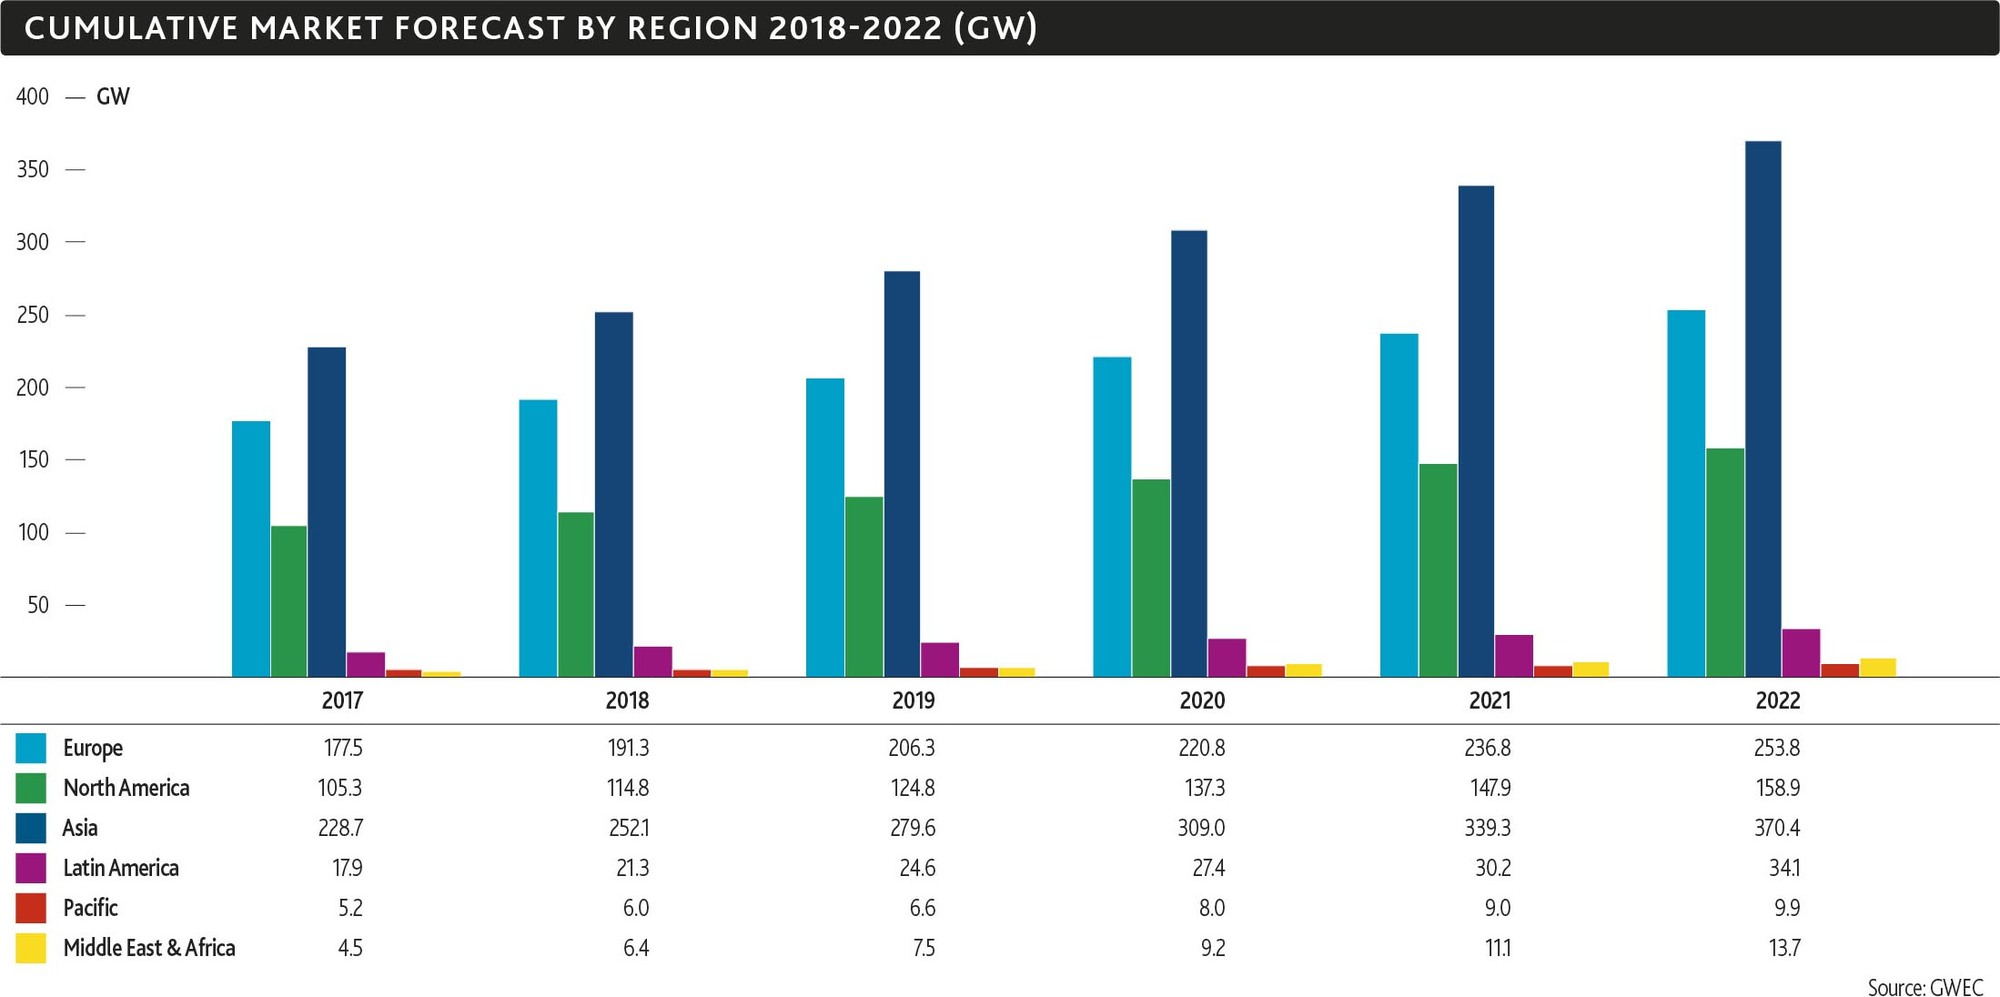 http://gwec.net/wp-content/uploads/2018/04/2_Cumulative-Market-Forecast-by-Region-2018-2022-GW.jpg